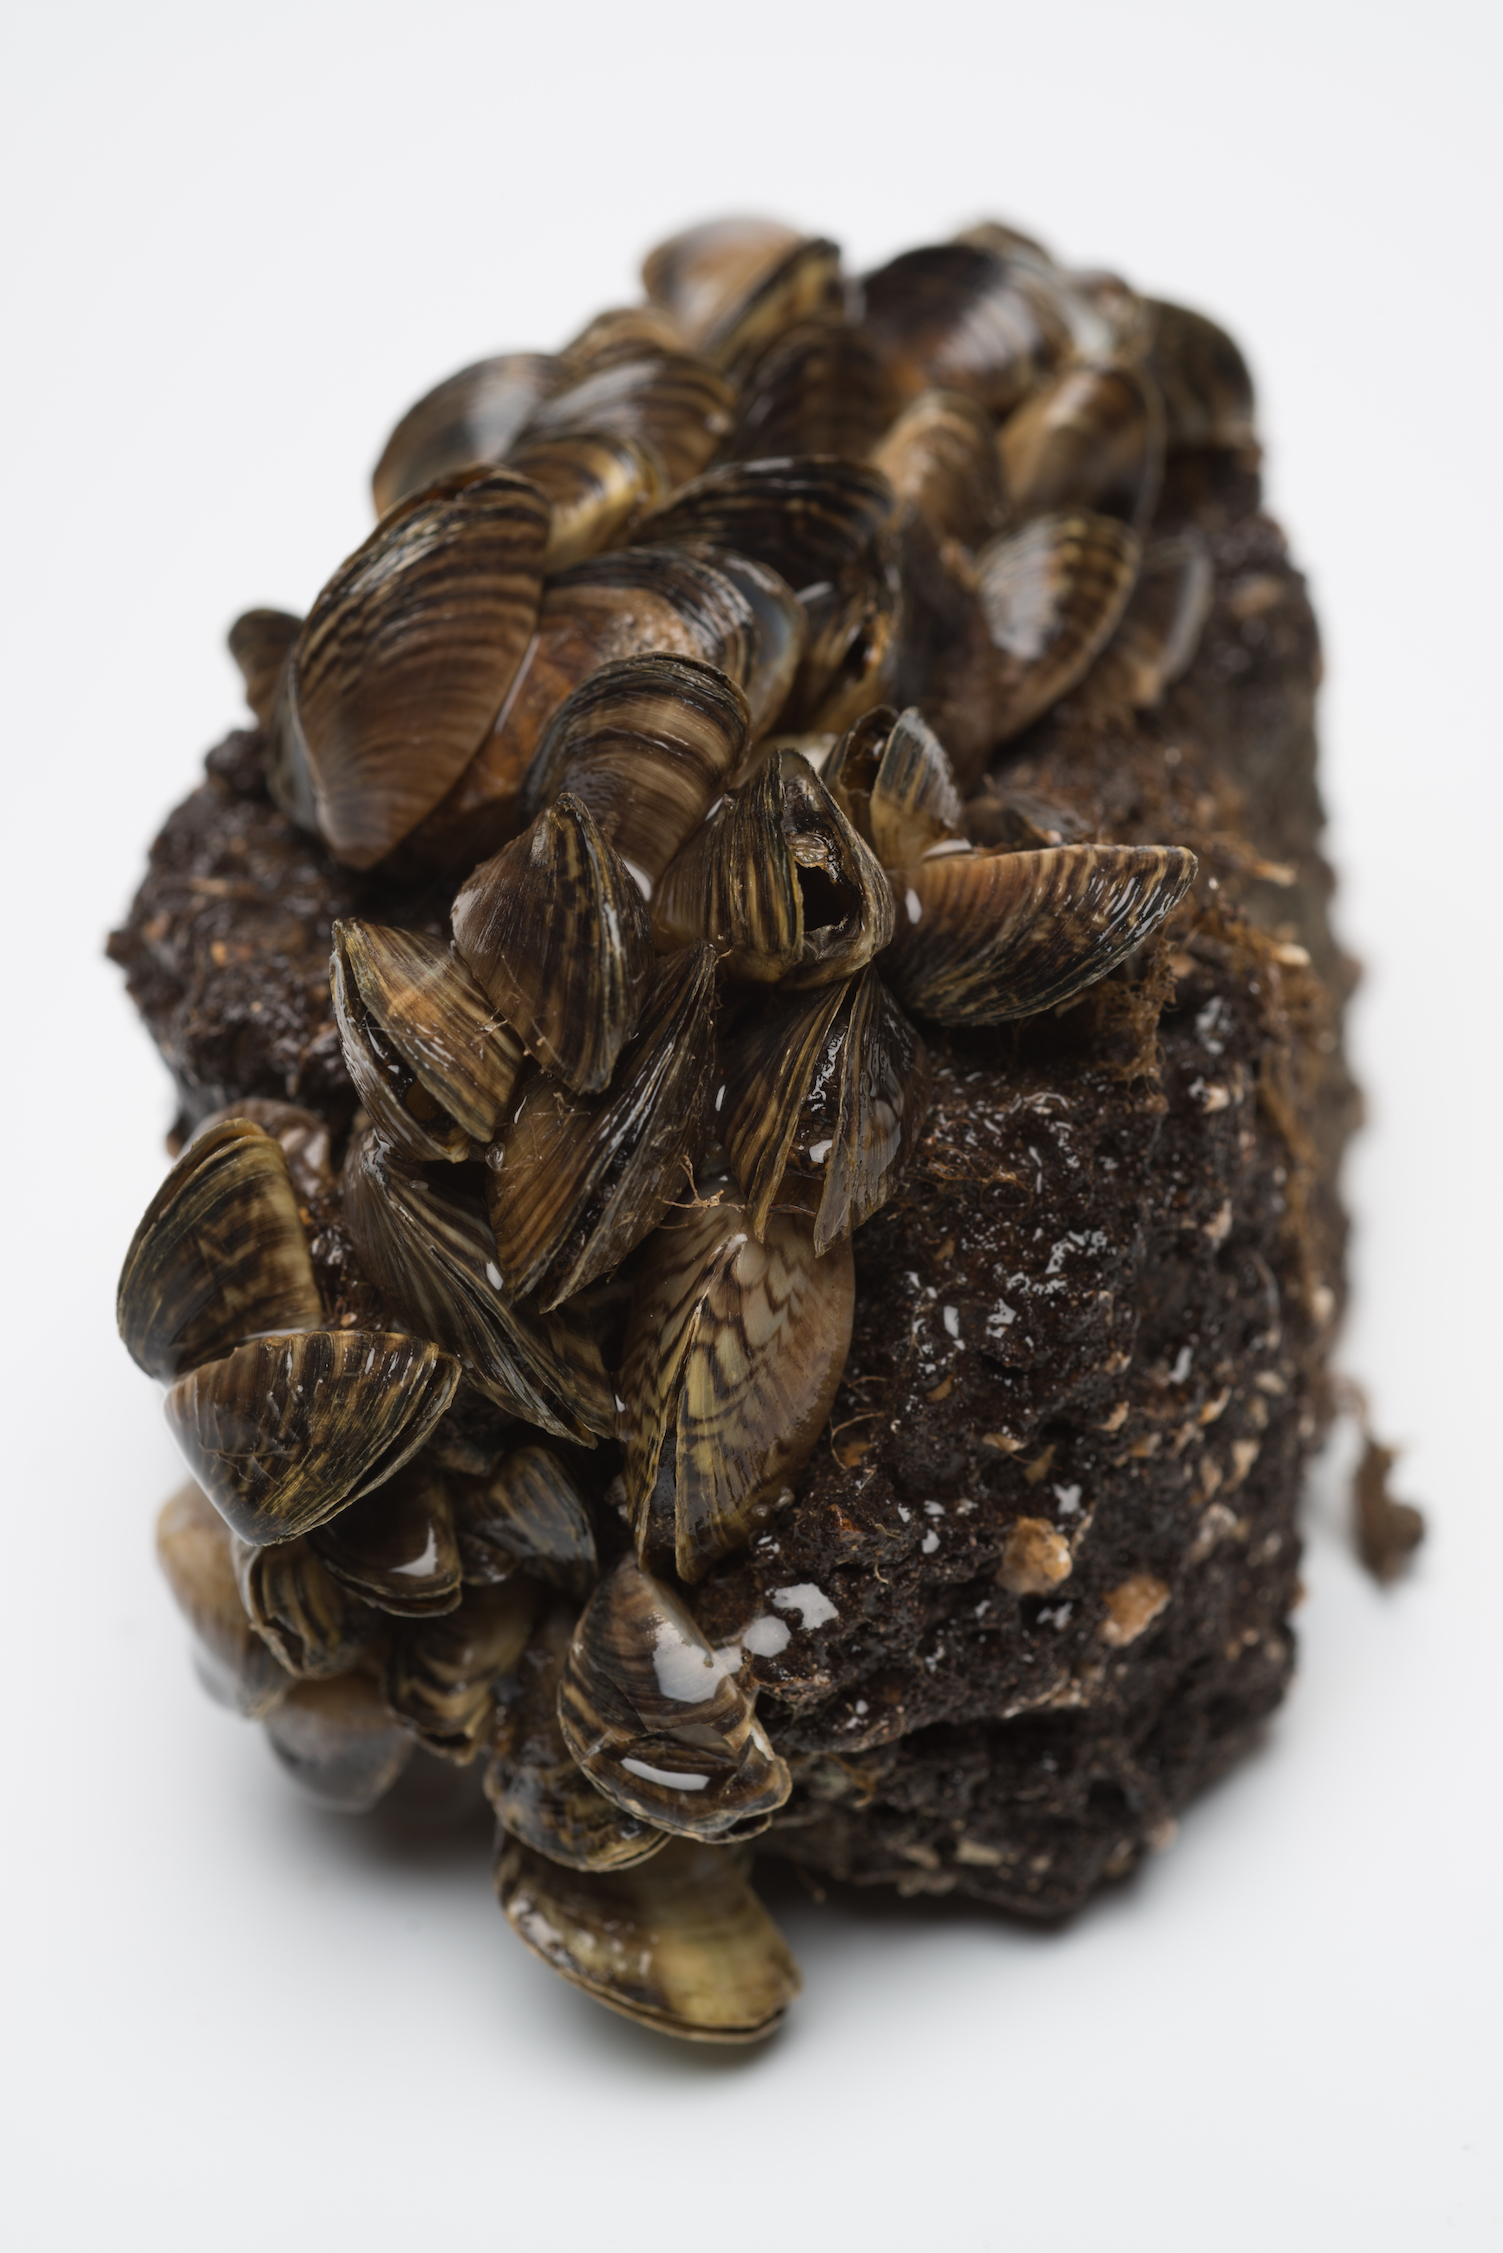 The presence of zebra mussels wreaks havoc on native ecosystems by disrupting the natural cycle of nutrients and outcompeting native bivalve species.